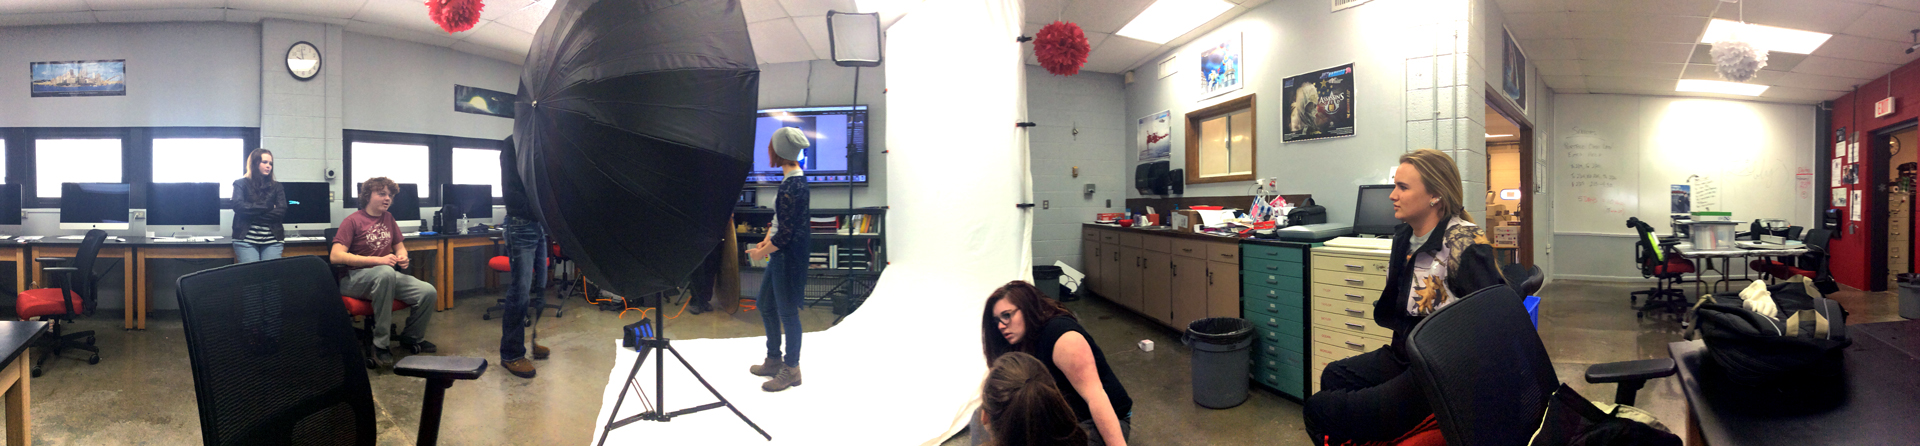 photograph of activities in a photo studio.